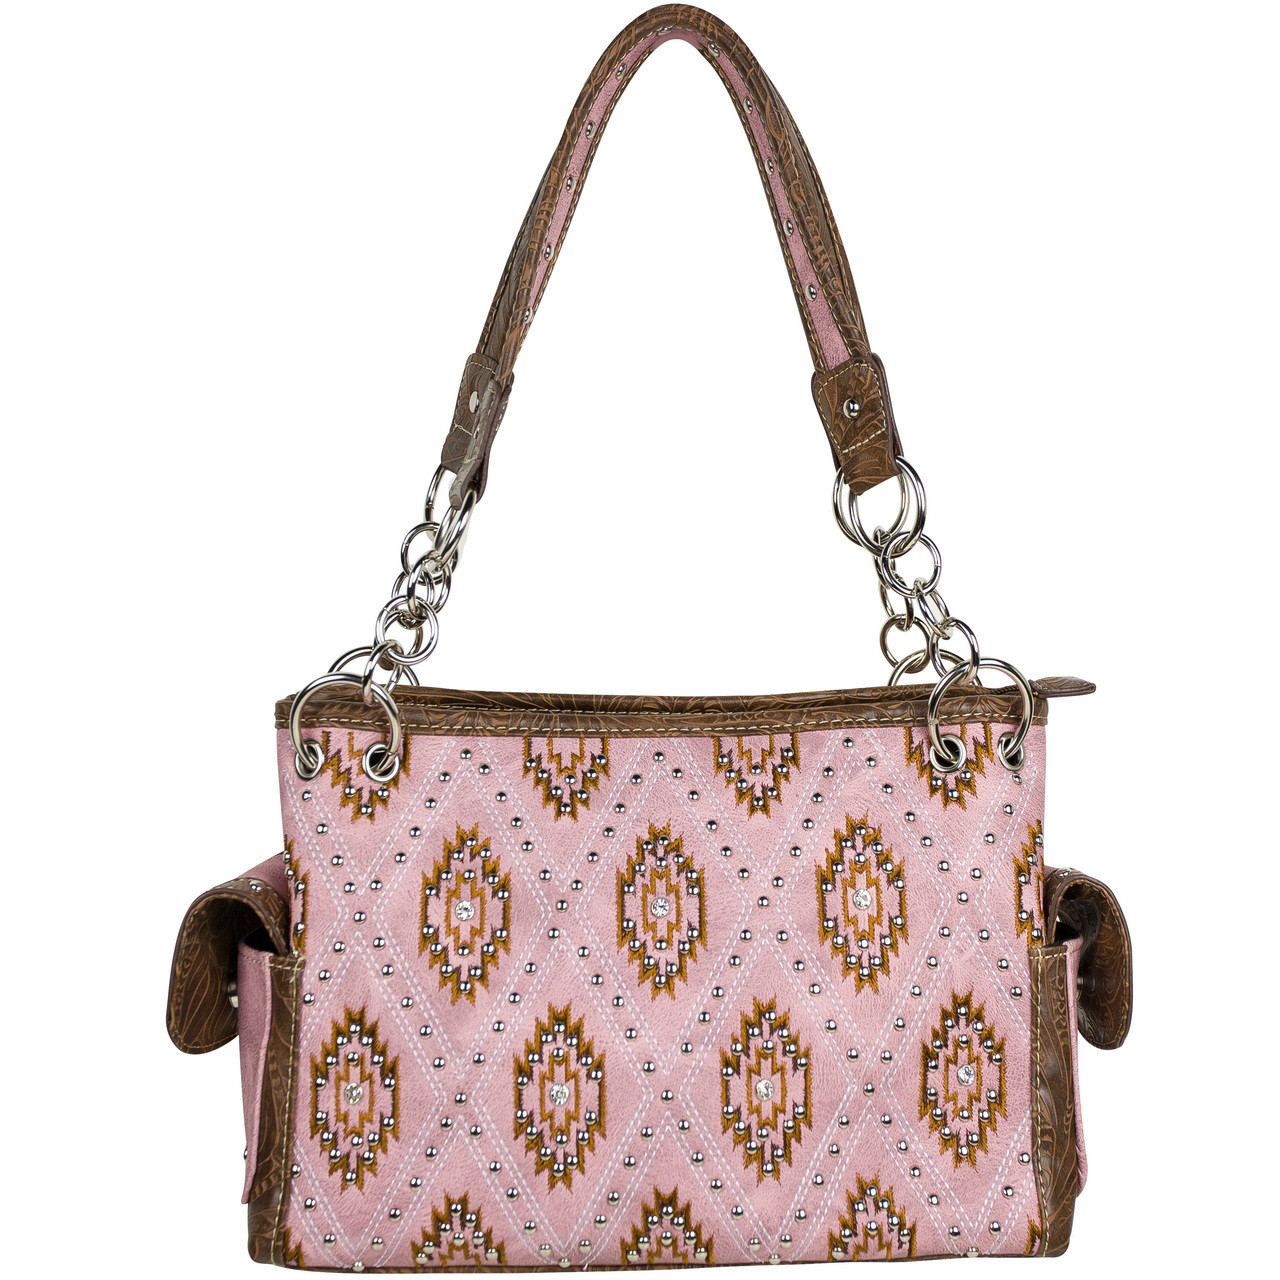 PINK WESTERN STUDDED LOOK SHOULDER HANDBAG HB1-939SWPNK